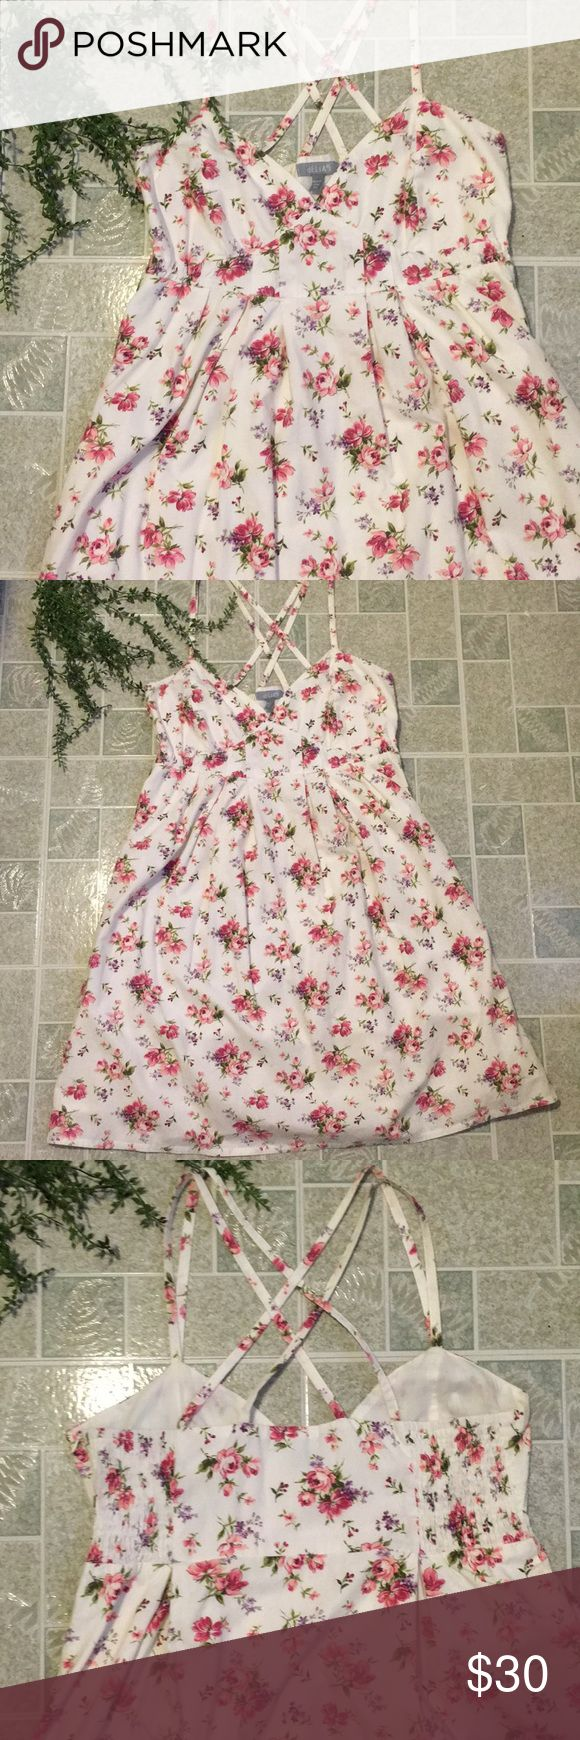 Beautiful Delia's Cotton Garden Party Dress Absolutely stunning floral print cotton dress. The back is smocked, and it has a full flowy skirt. Perfect condition. Probably will work best for someone who isn't over a C cup. delias Dresses Midi